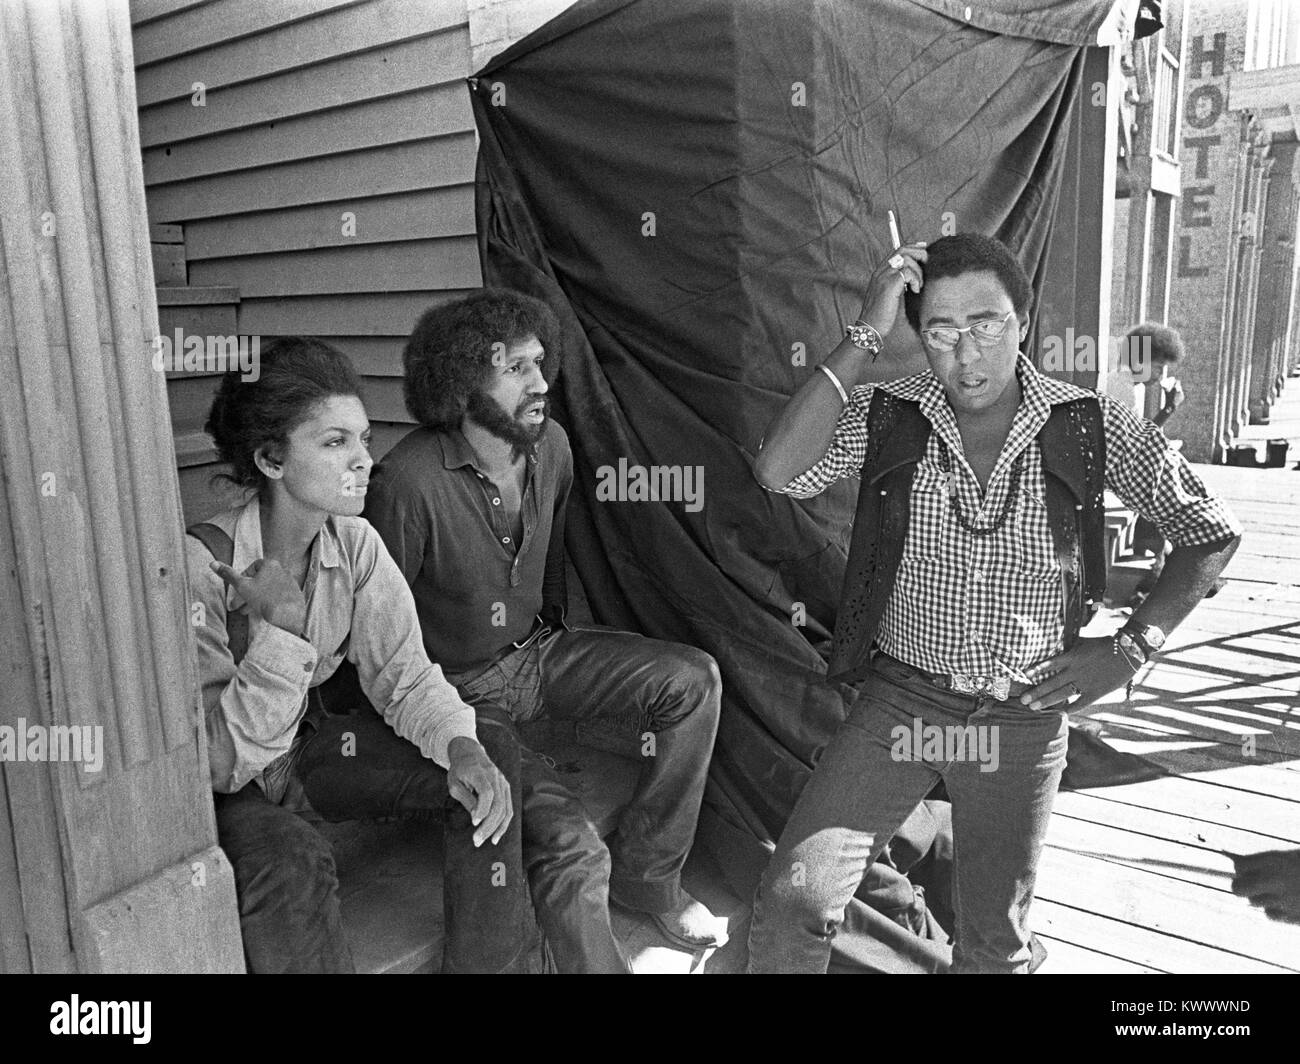 Actor Vonetta McGee (left), Max Julien (center), and director Gordon Parks Jr., on movie location in New Mexico - Stock Image